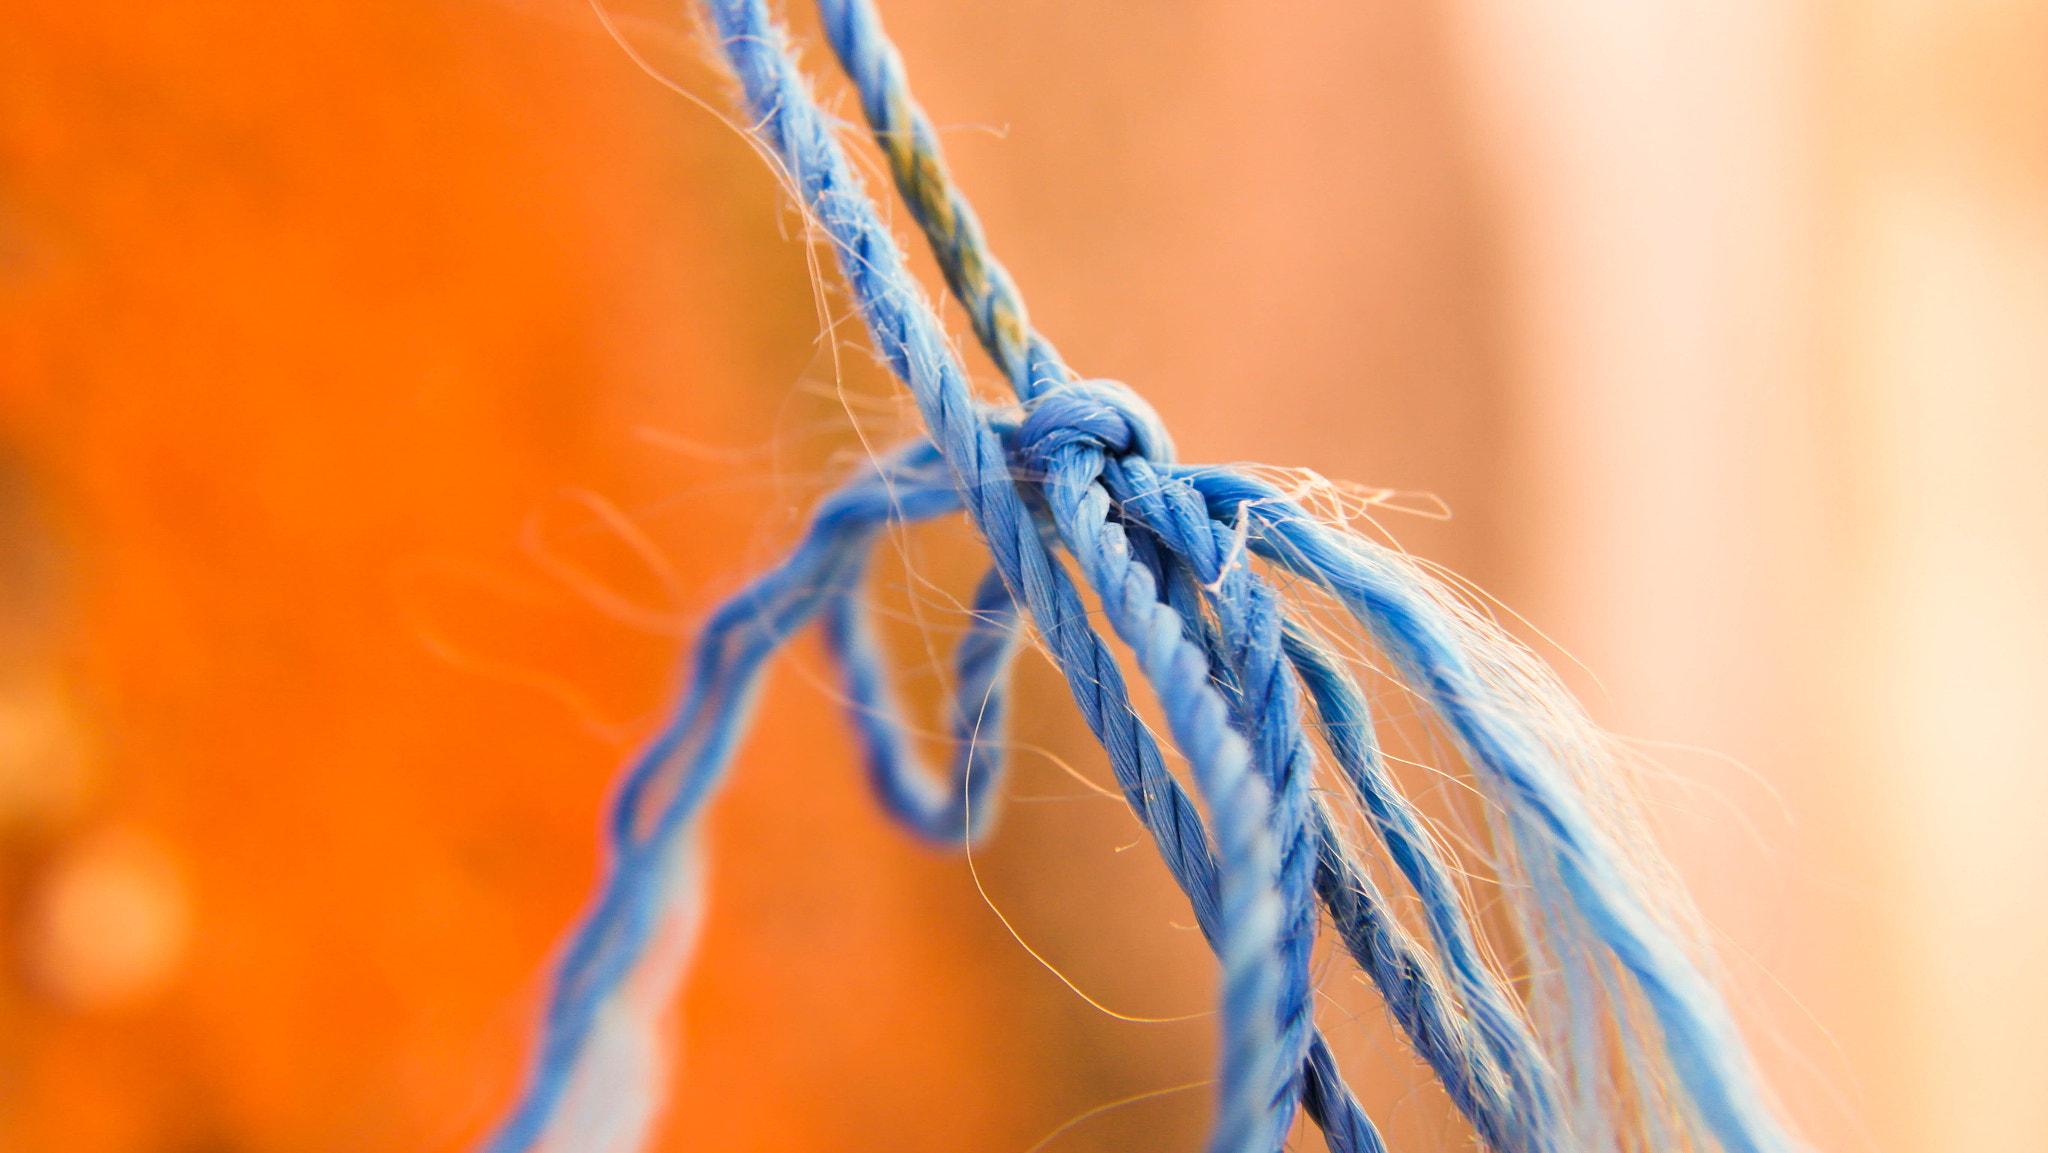 Photograph A blue rope. by Jim Tsipoutas on 500px